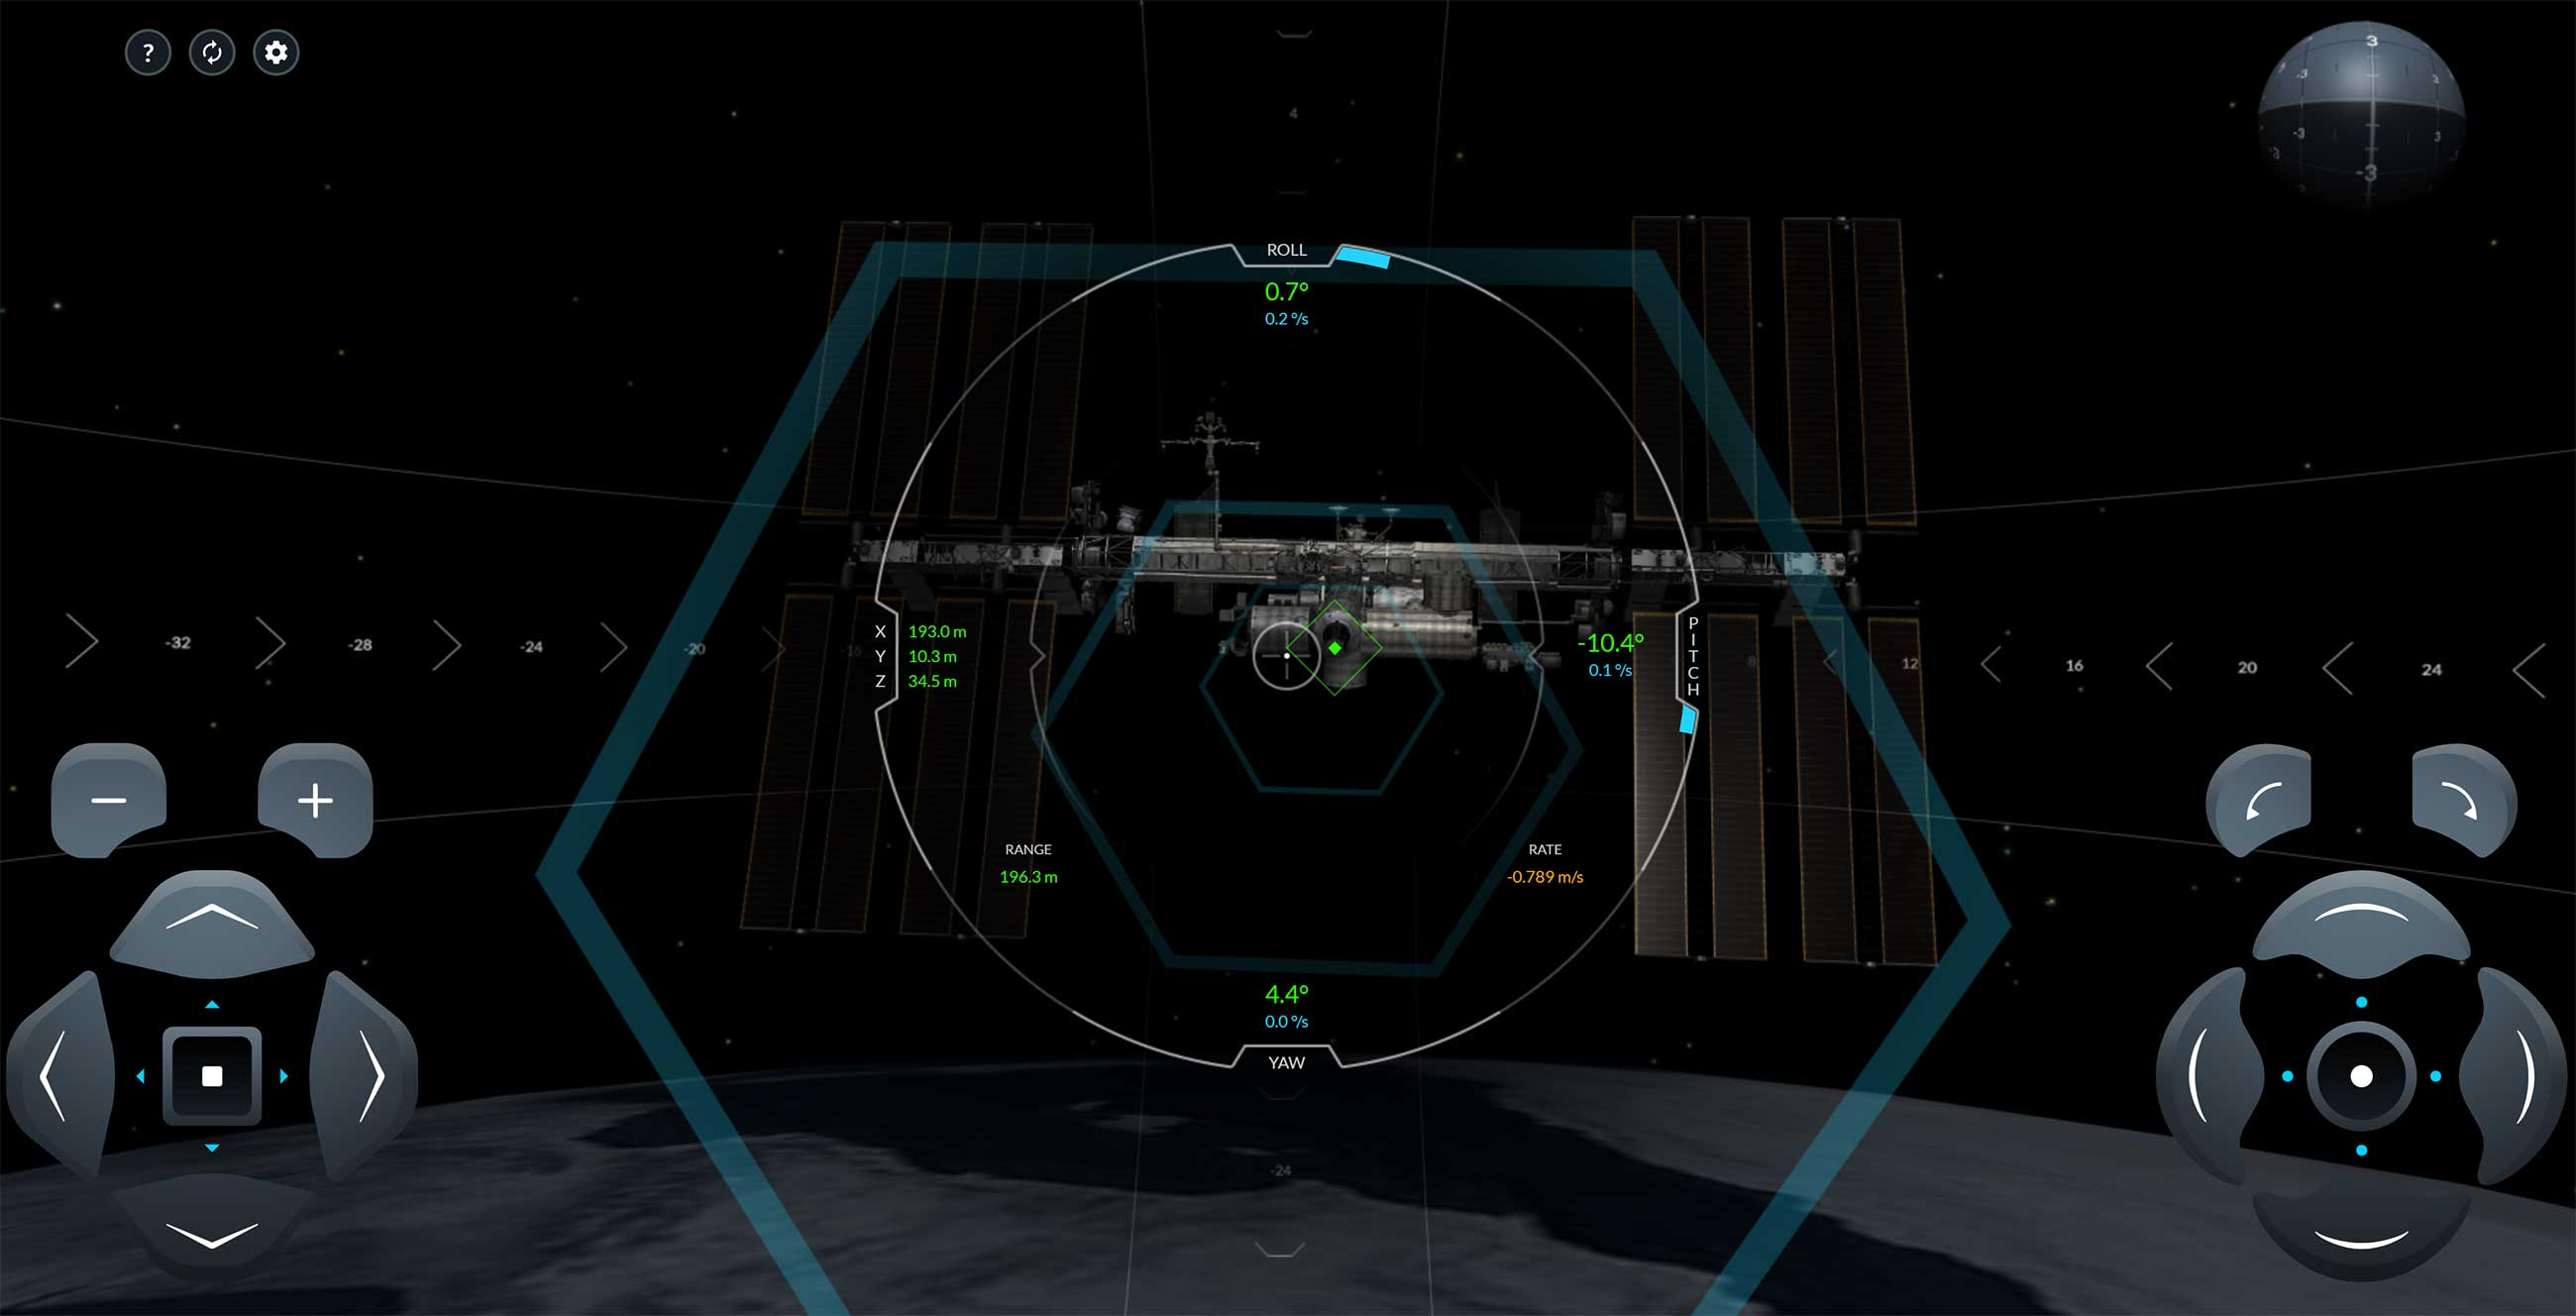 """SPACEX"", der ISS Docking Simulator"